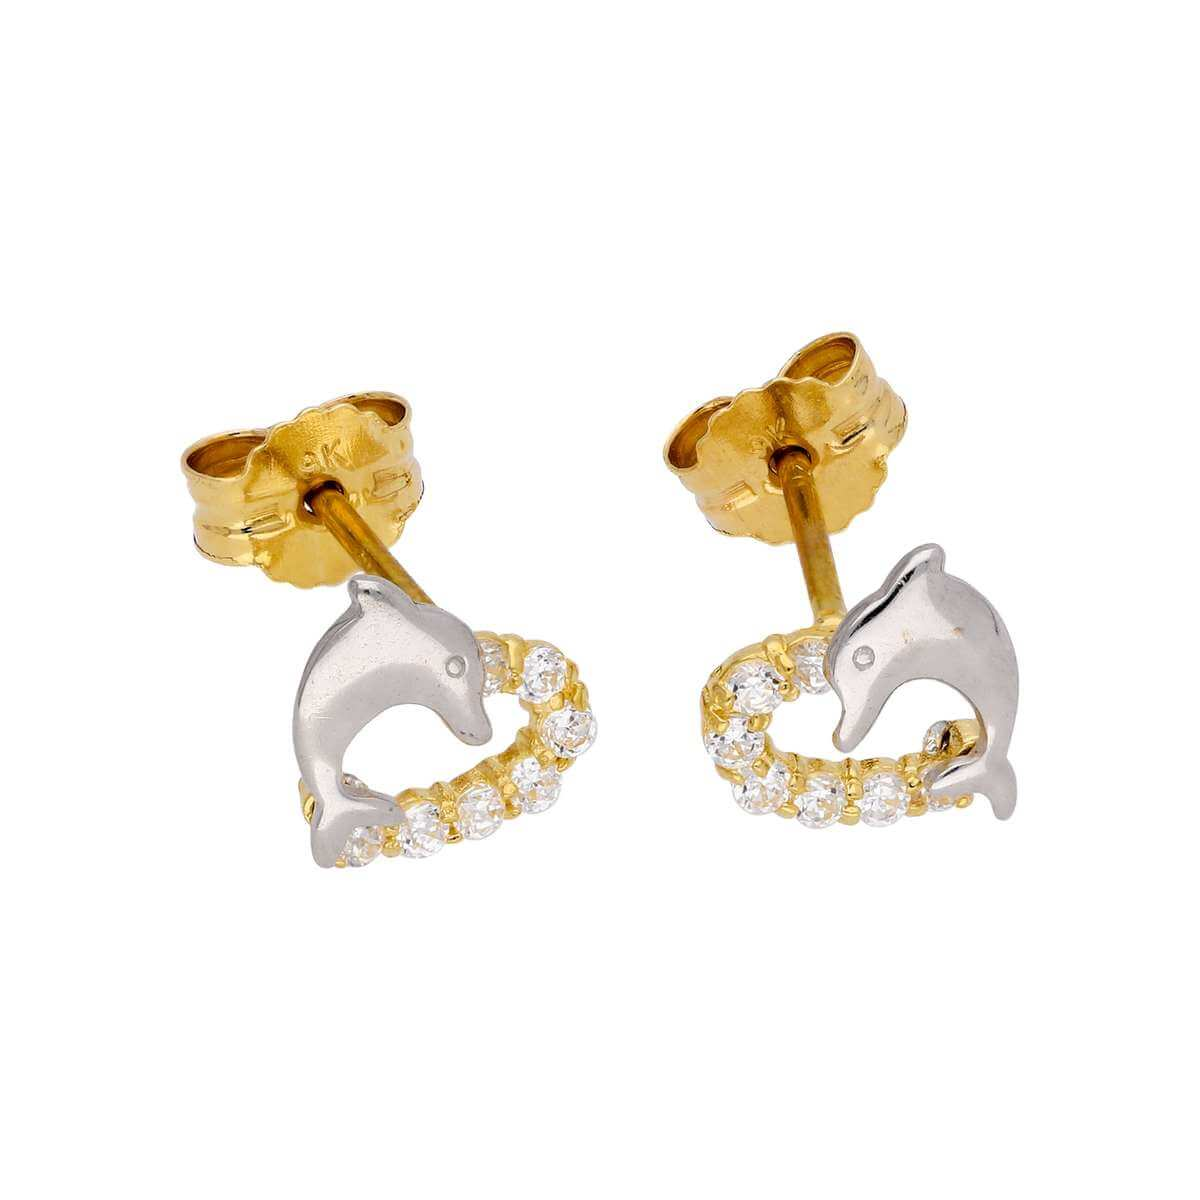 9ct Gold & CZ Crystal Open Heart & Dolphin Stud Earrings